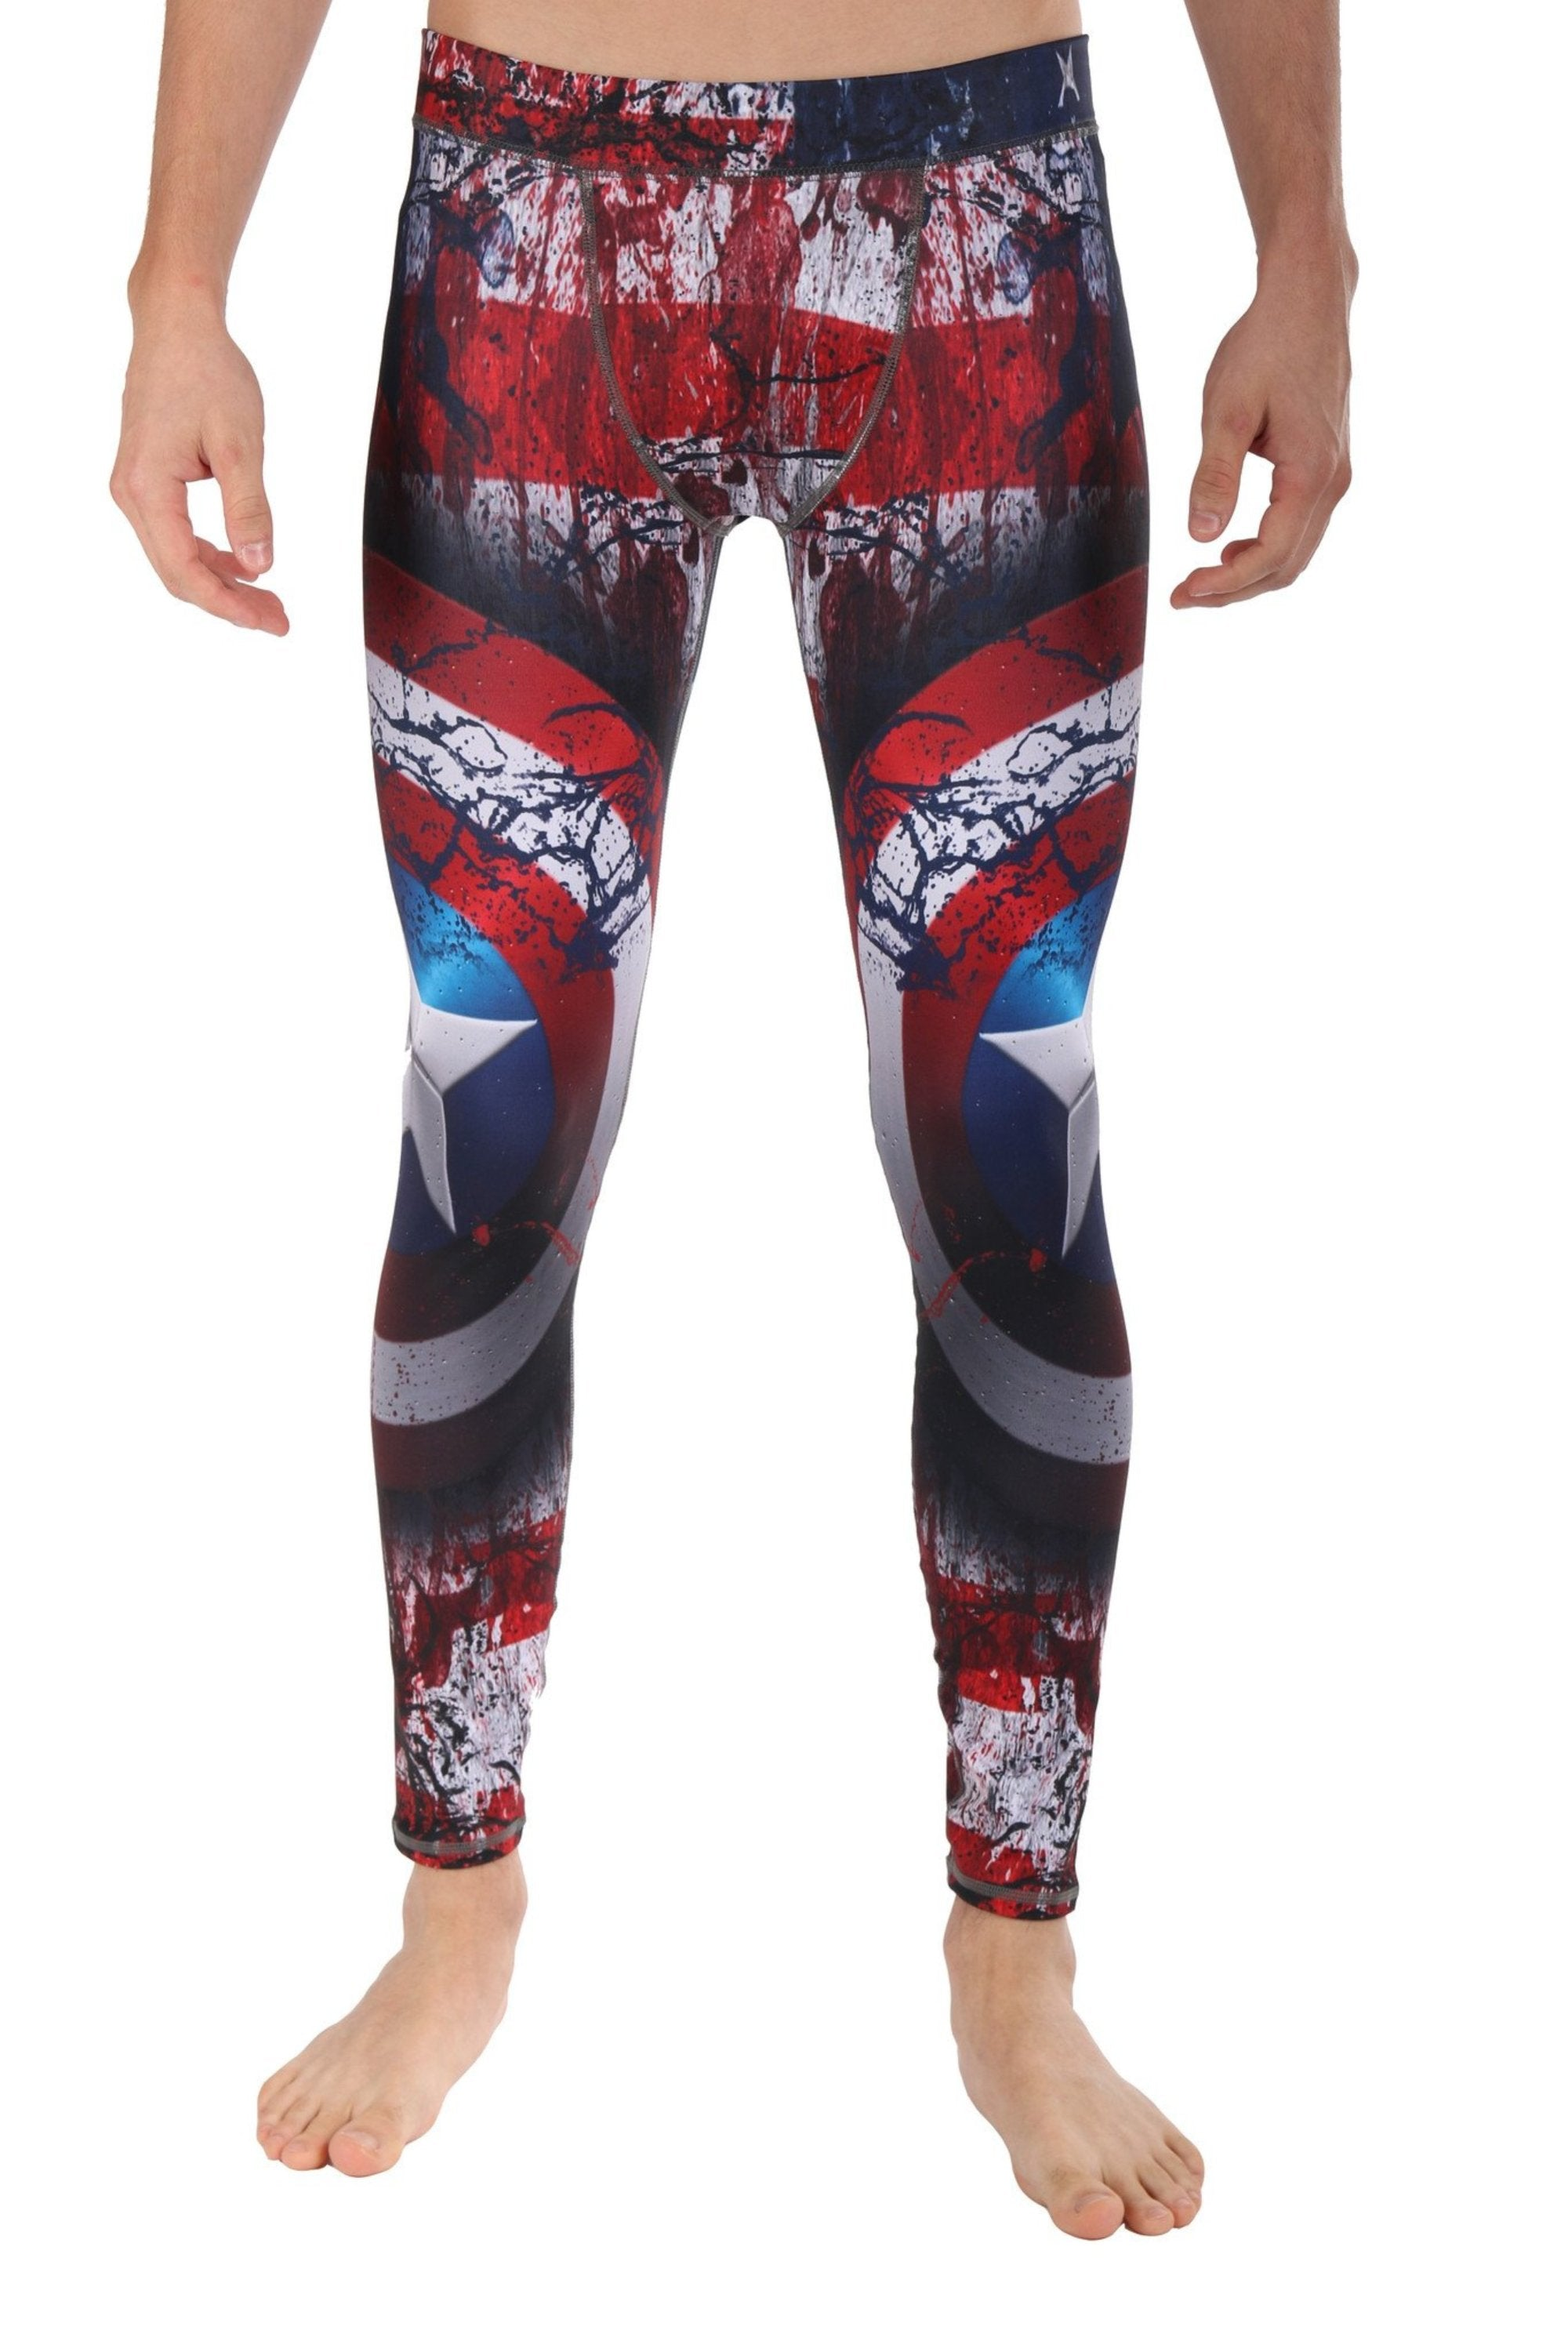 a5d7eaebcf77f Super Hero Yoga Pants- Captain America Men's Legging. Find this beast  pattern in the ...